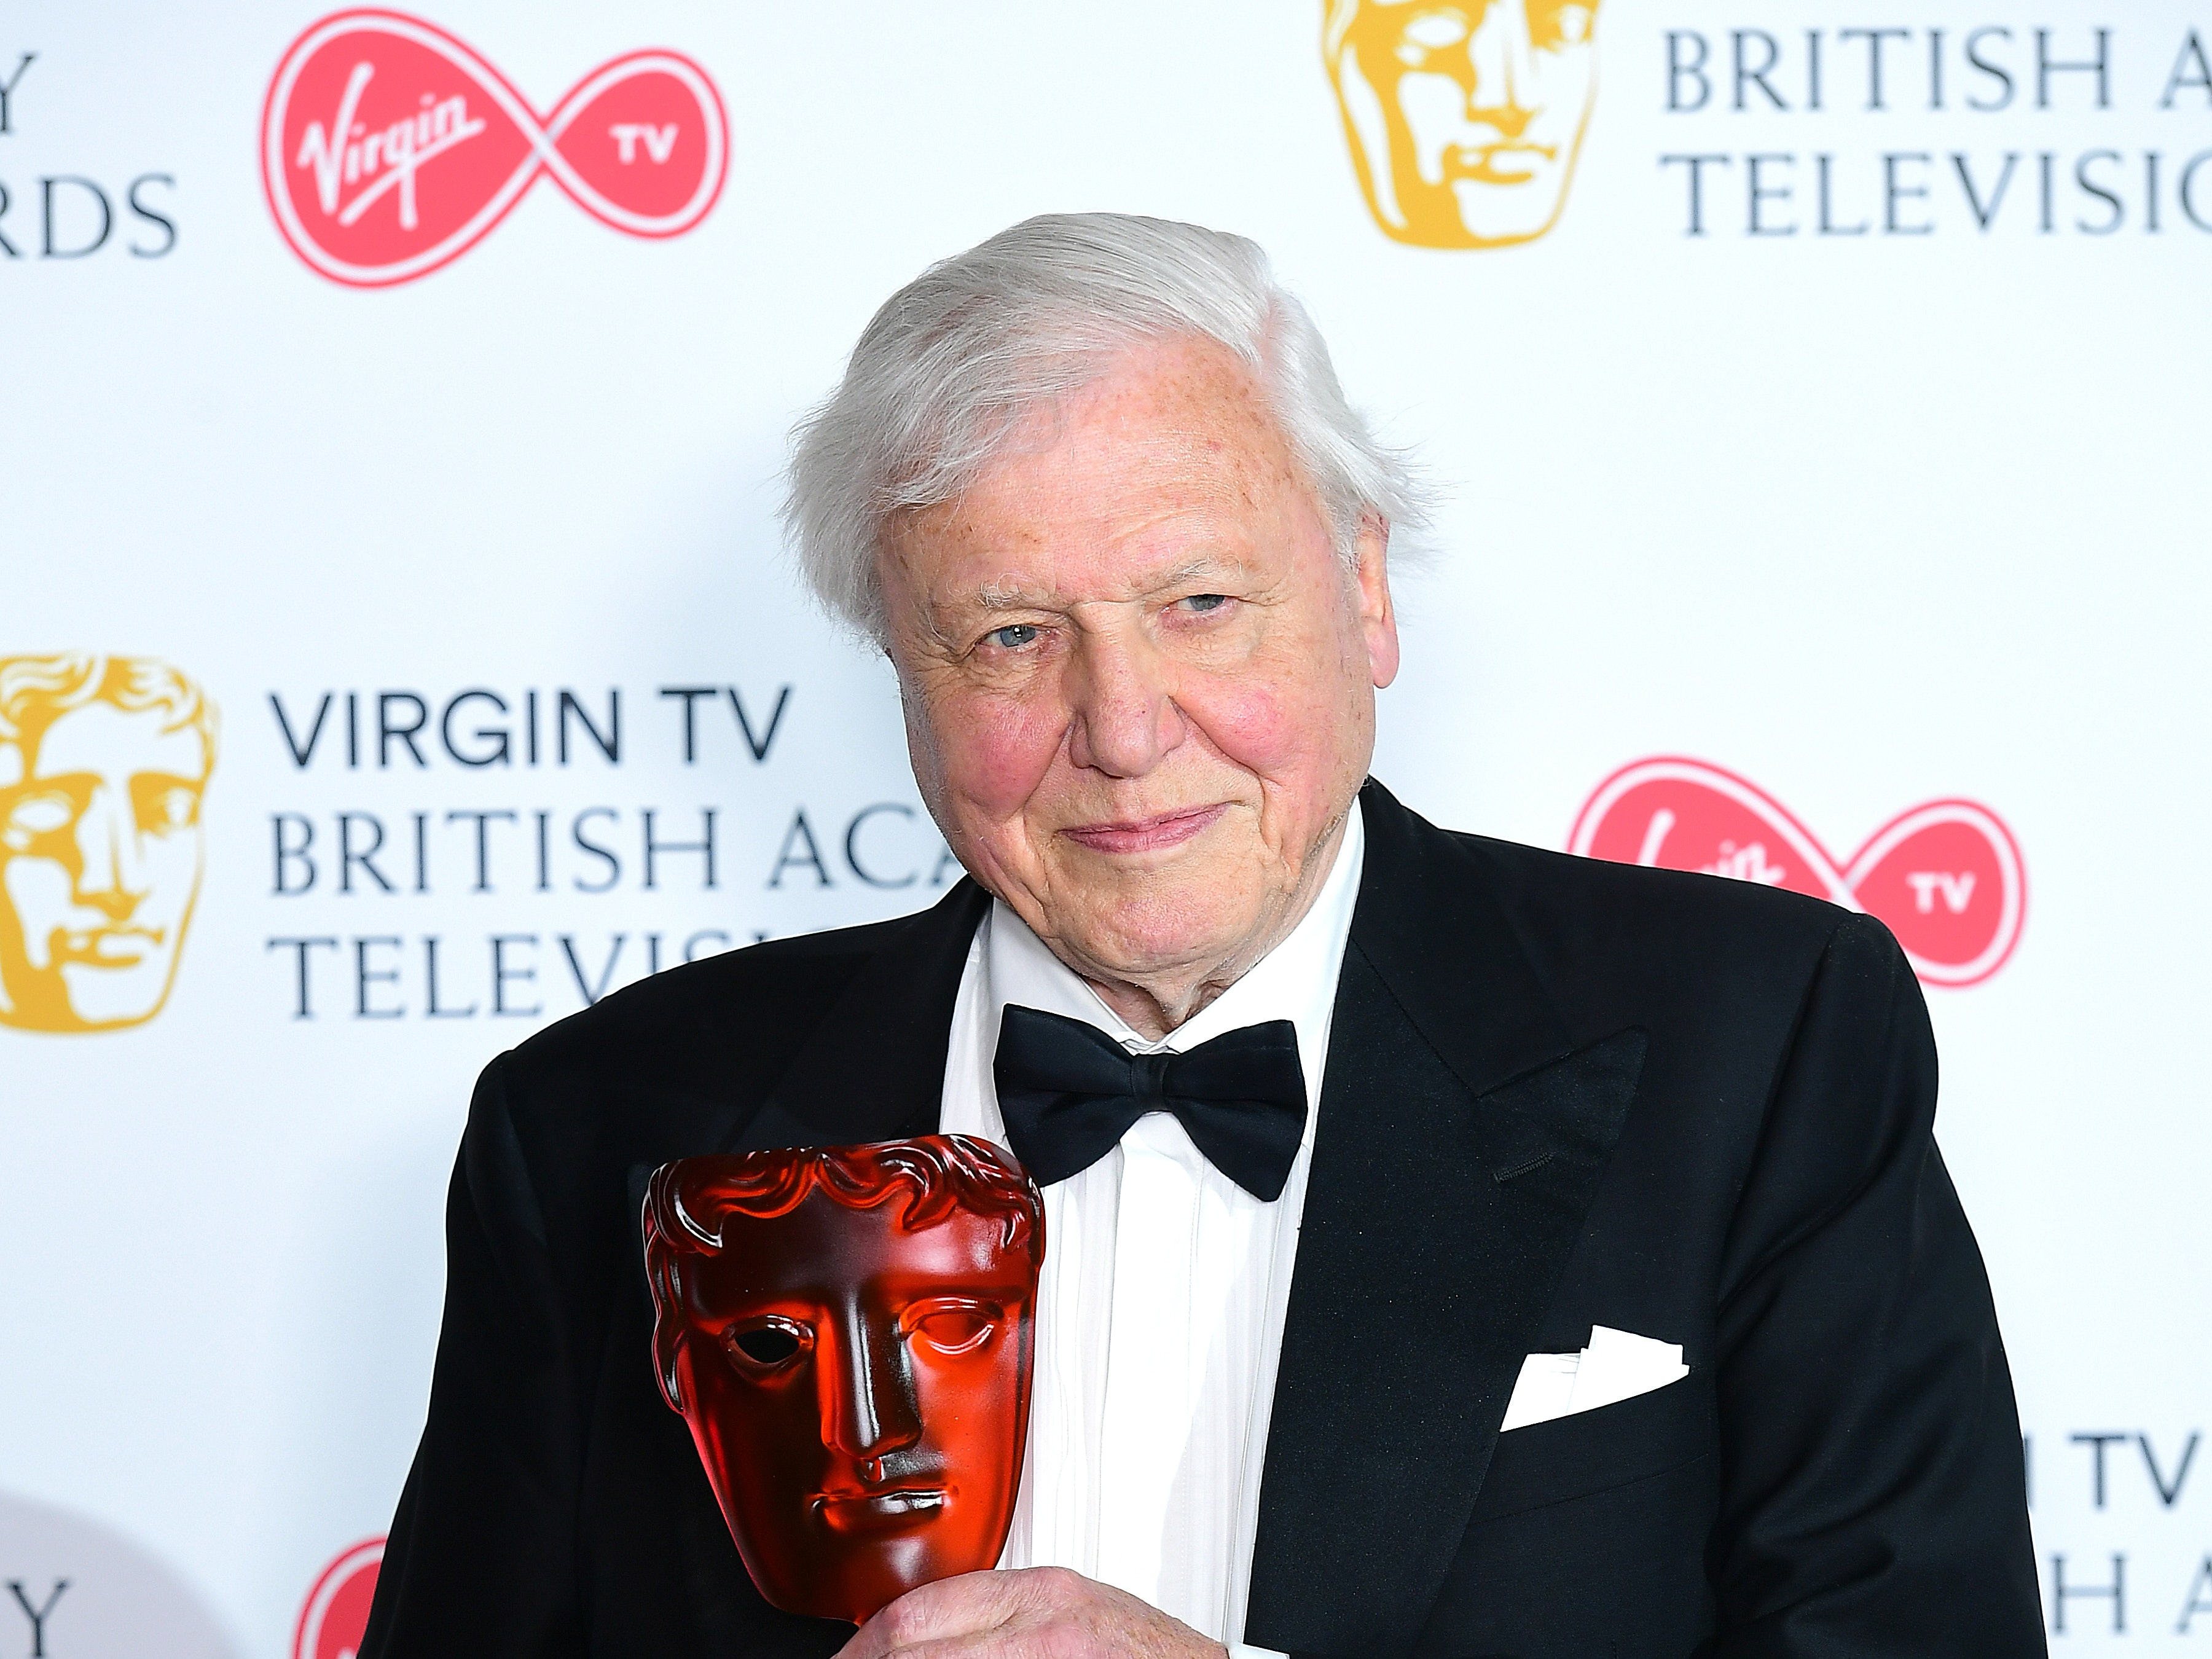 Attenborough on edge of his seat watching footage from new